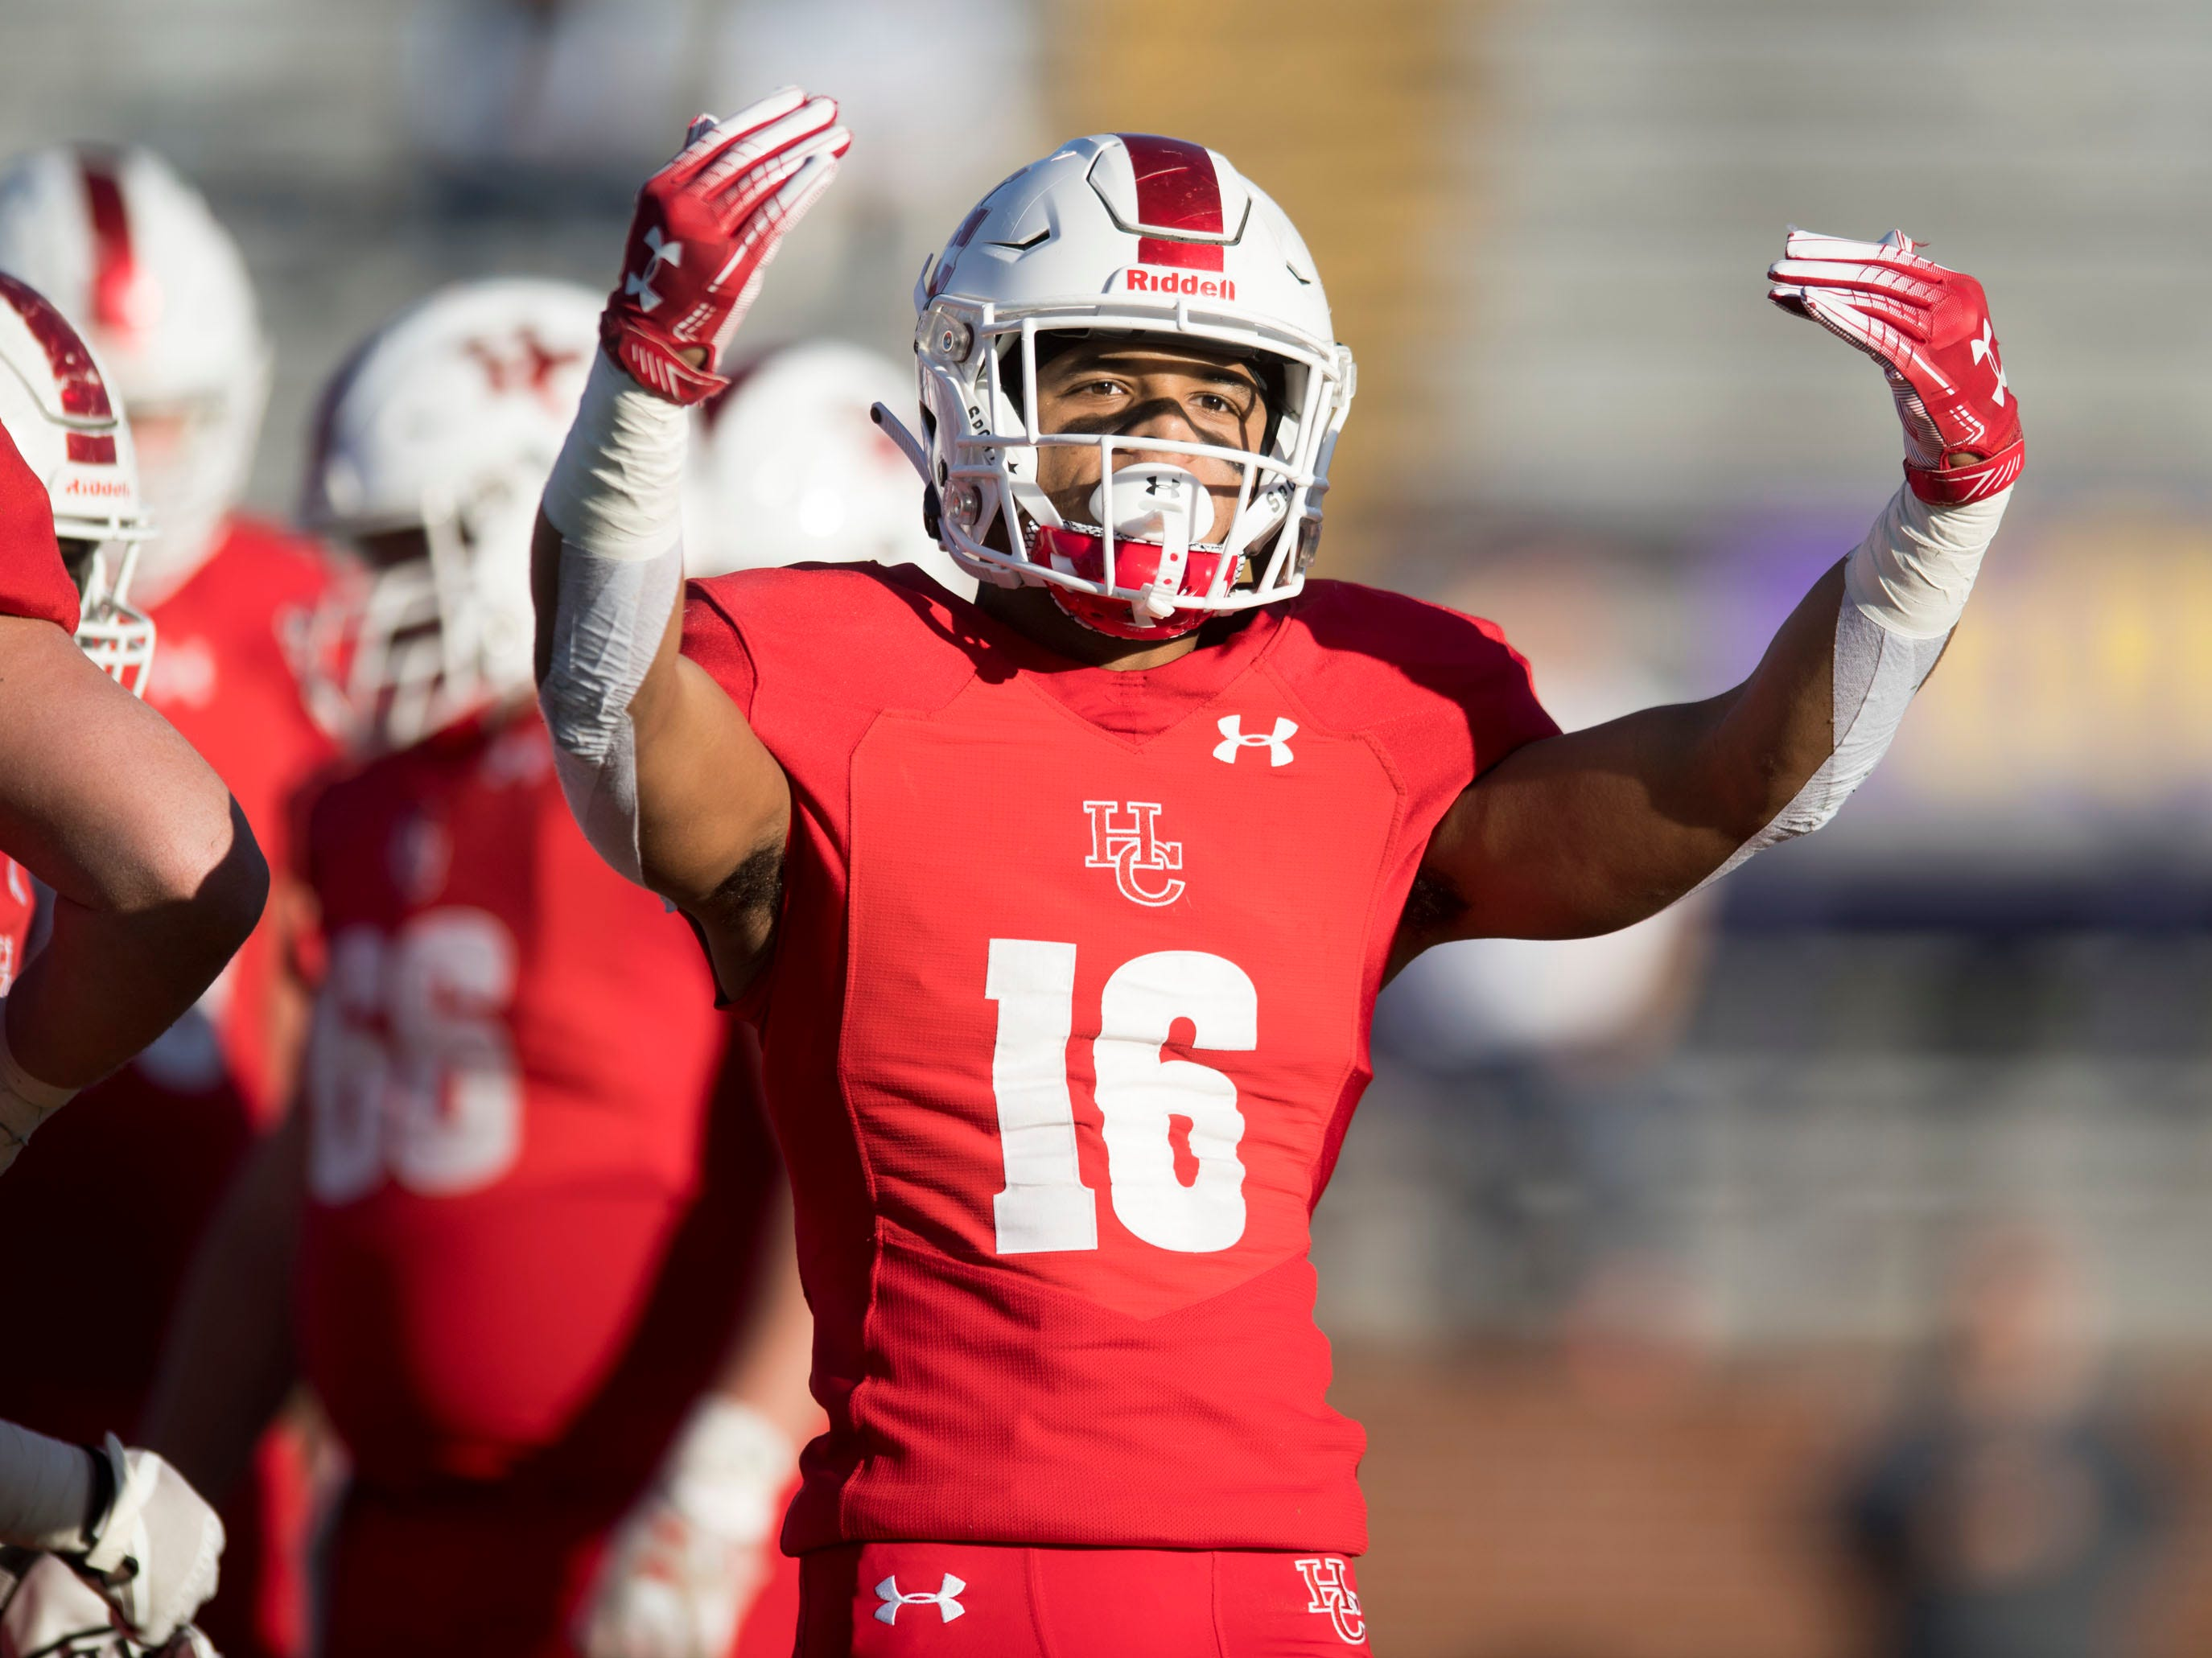 Henry County's Ethan Thompson (16) encourages Henry County fans during the game against Knoxville Central in the Class 5A BlueCross Bowl at Tucker Stadium on Sunday, December 2, 2018.